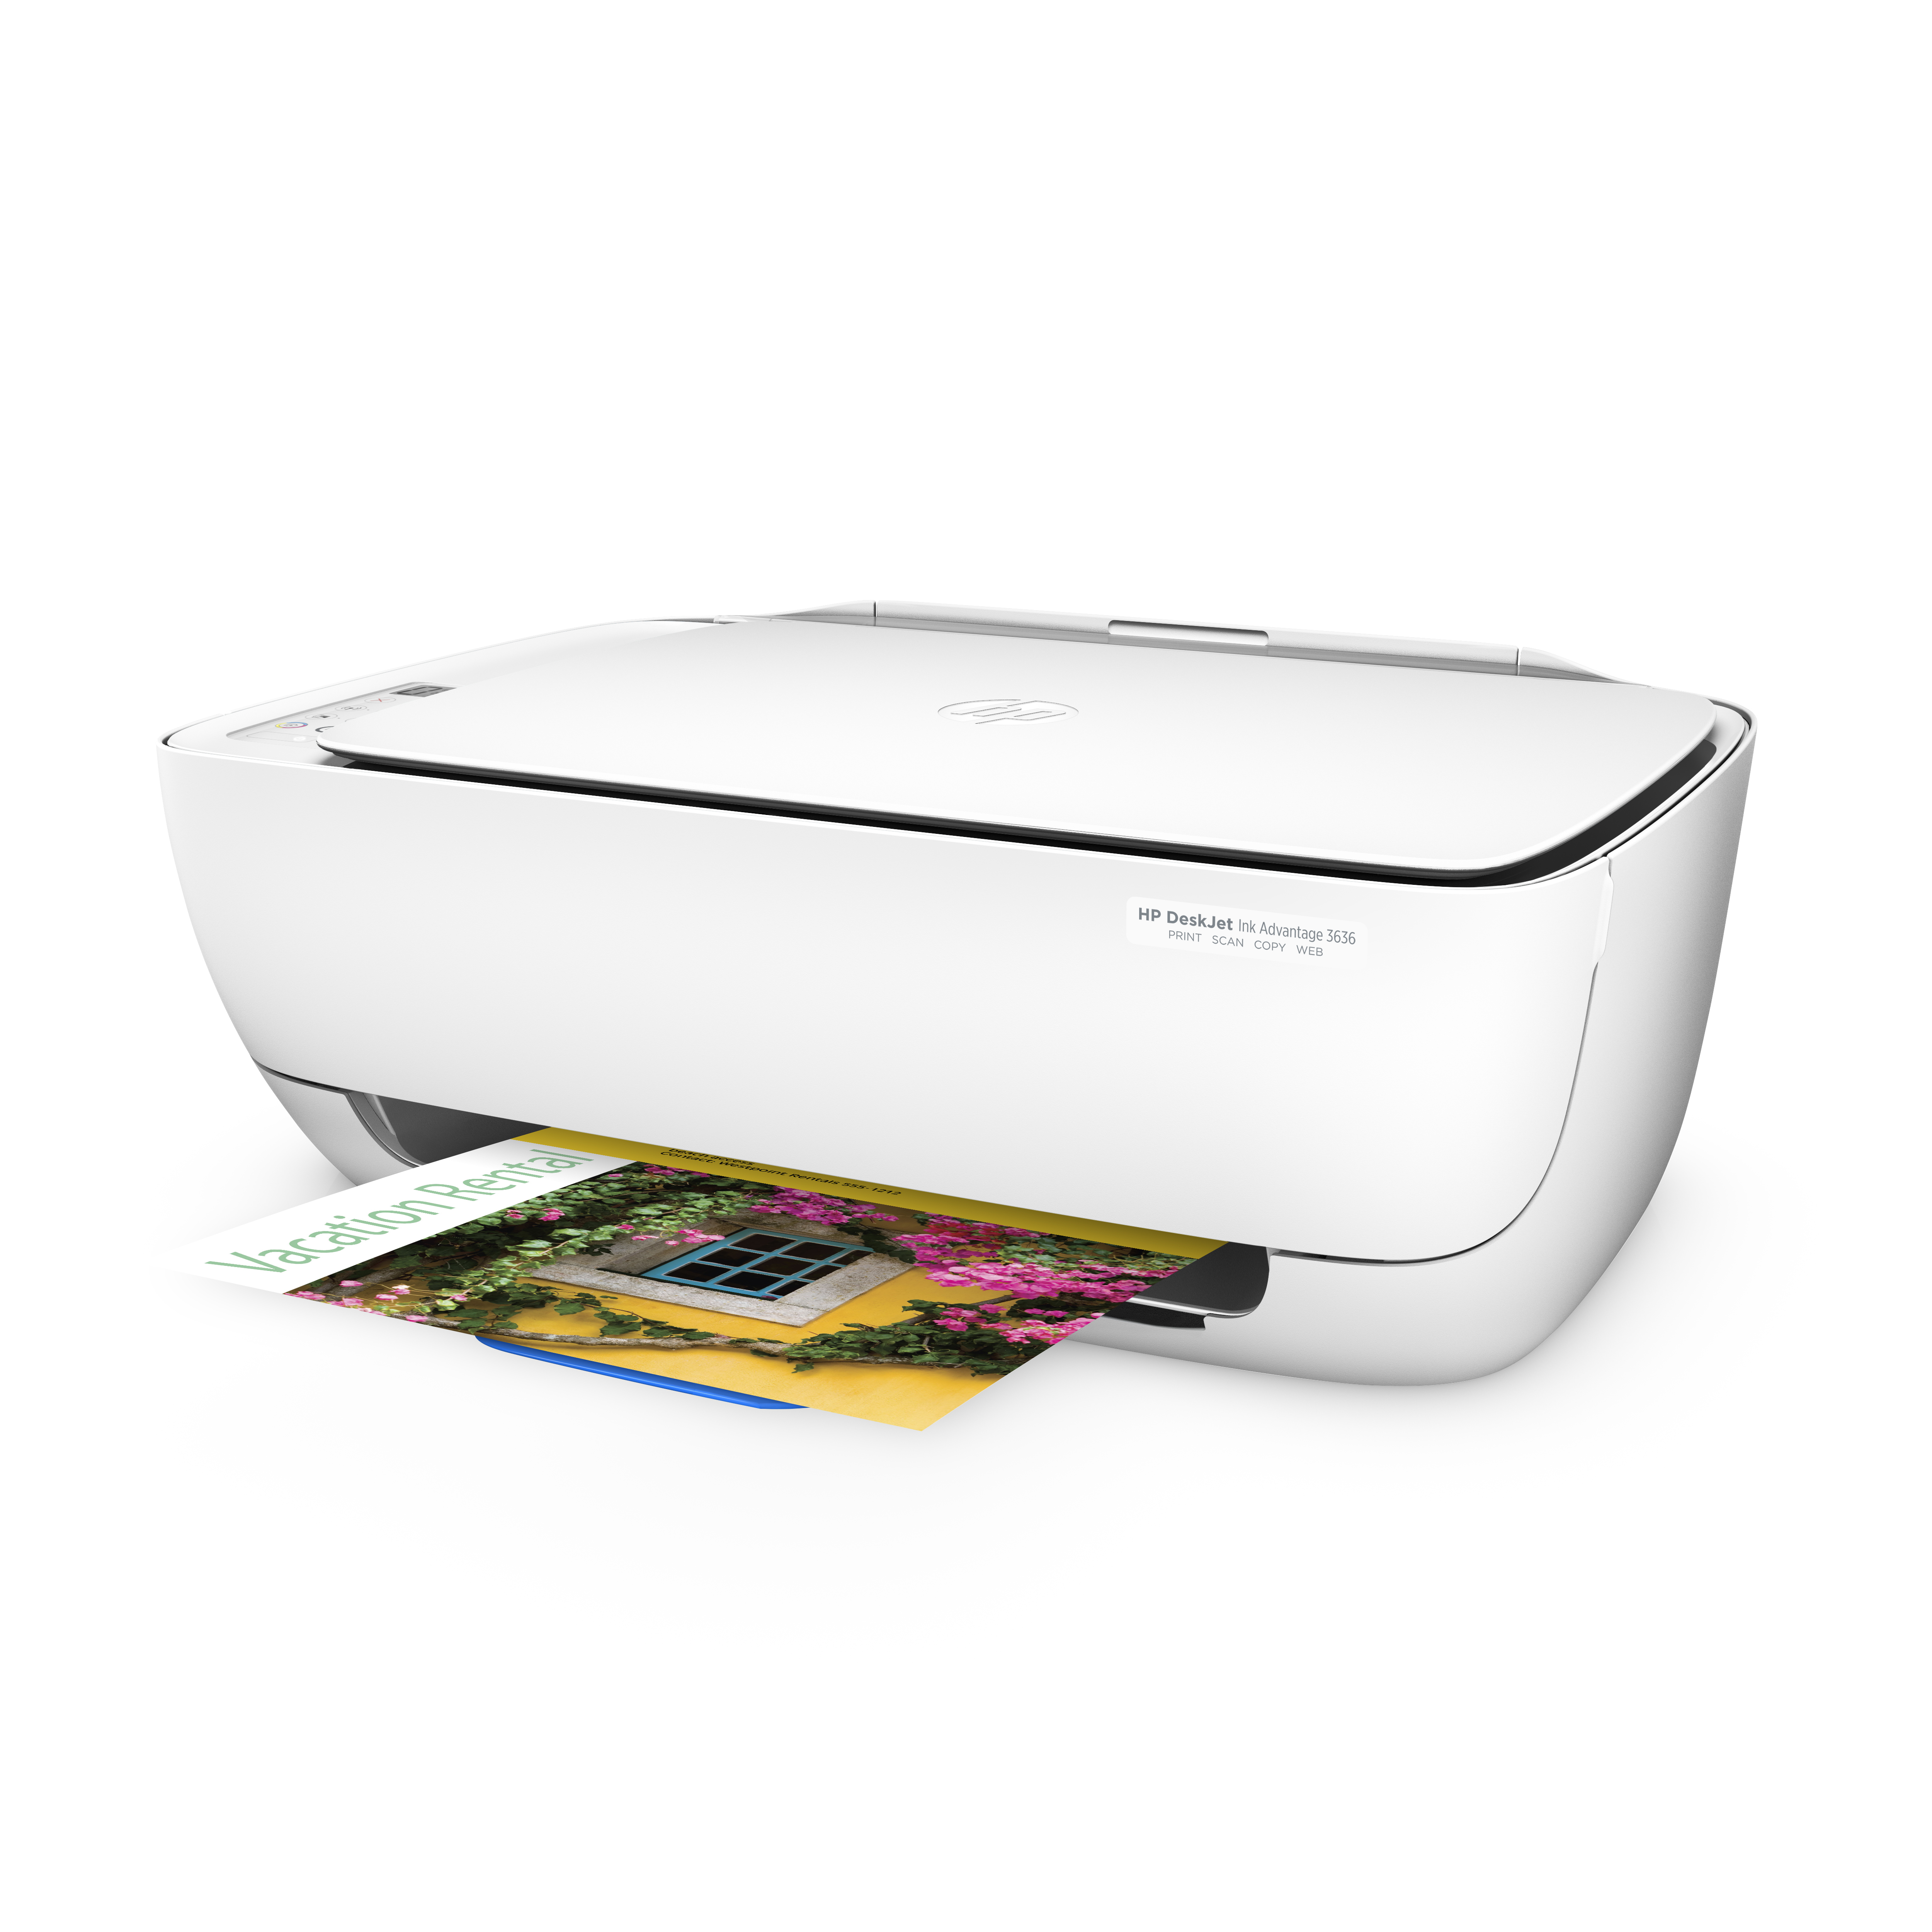 Hewlett Packard (HP) Deskjet 3636 Multifunktionsdrucker (A4, WLAN Drucker, Scanner, Kopierer,  Instant Ink ready, Apple AirPrint, ePrint, USB, 4800 x 1200 dpi) weiß